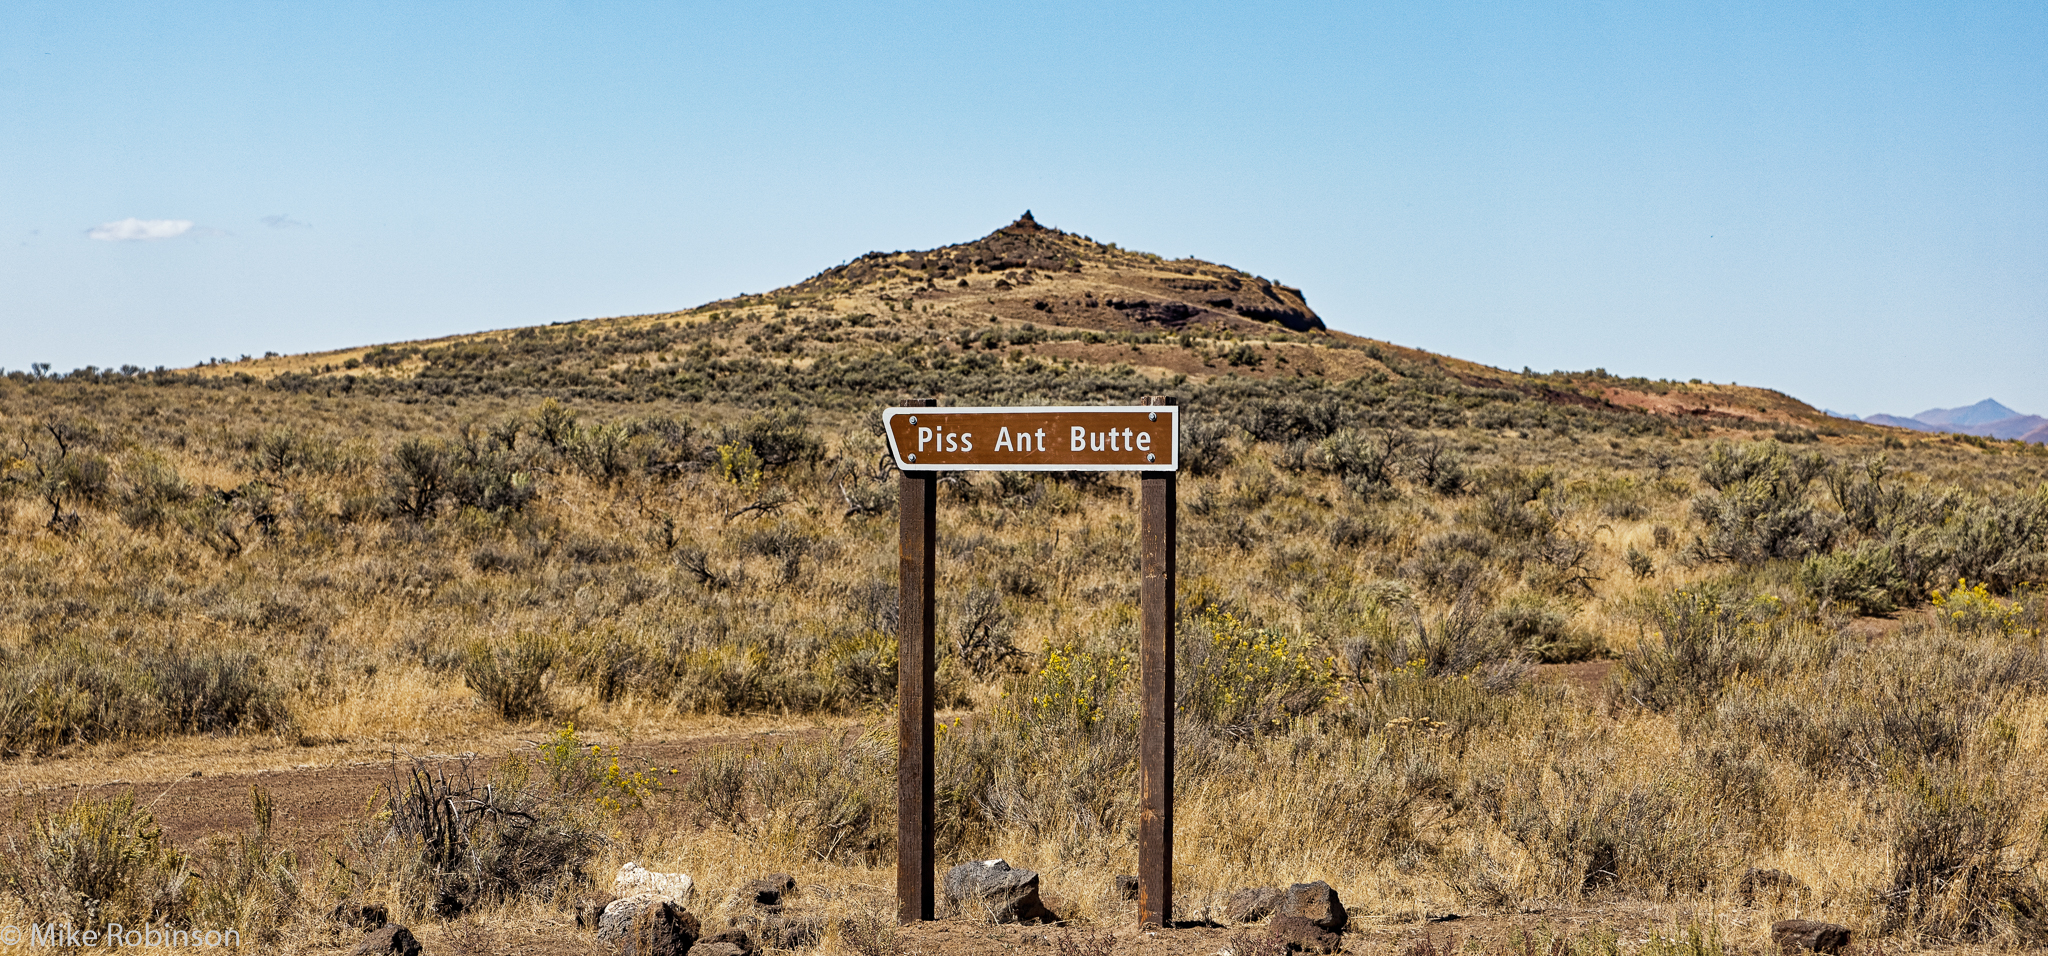 Piss Ant Butte